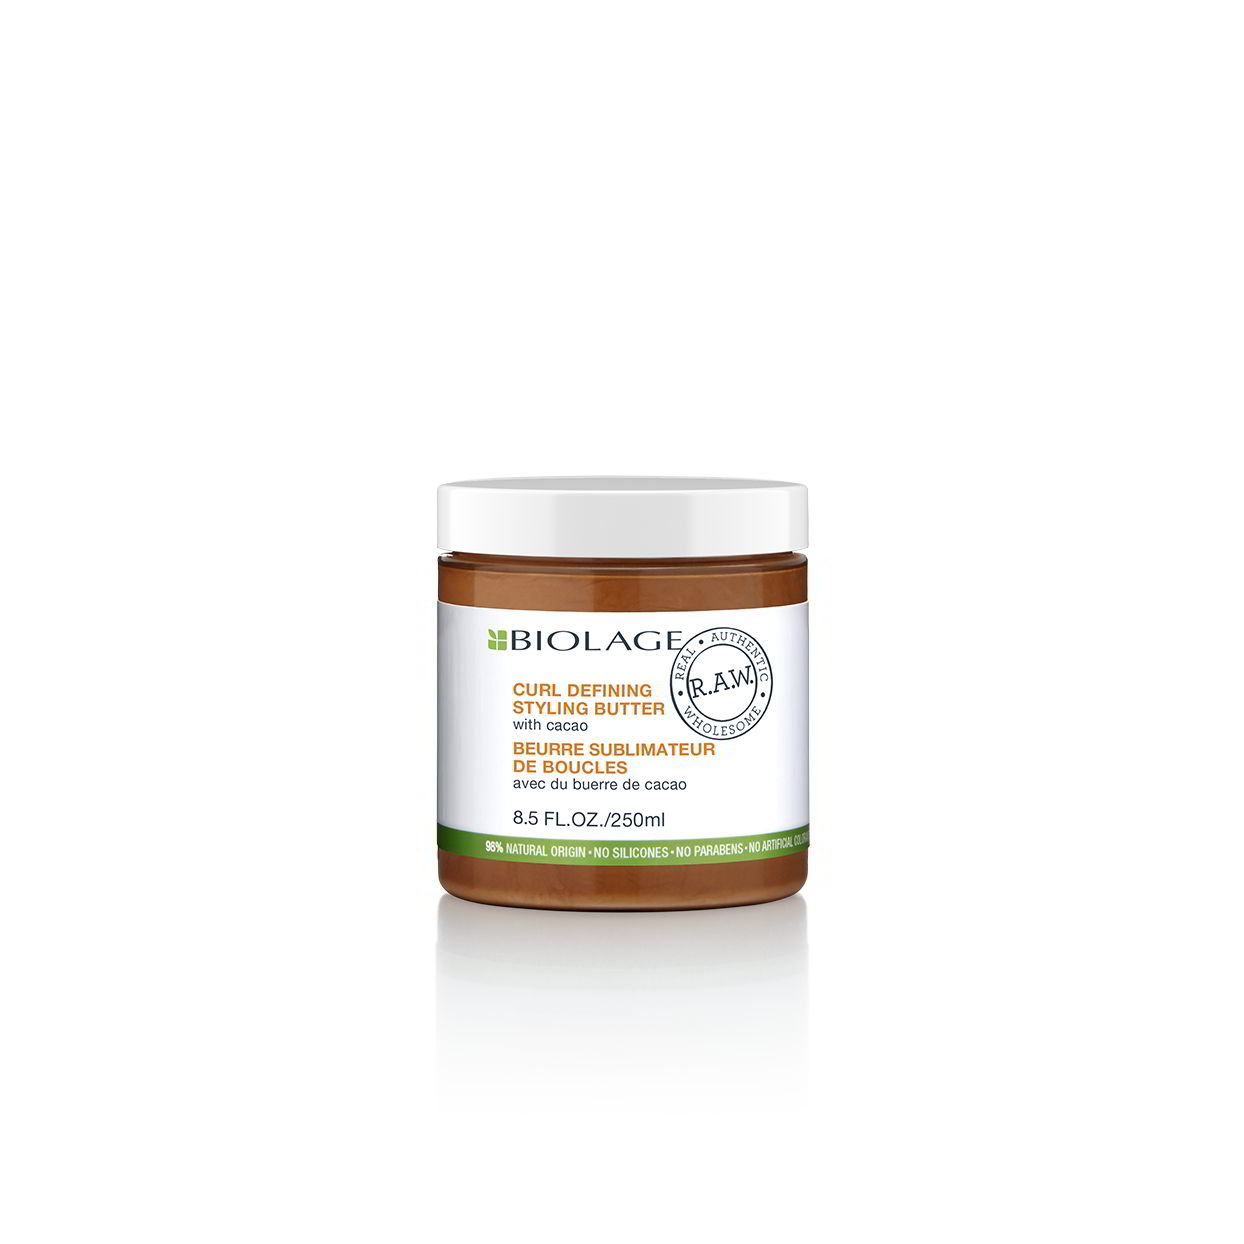 Biolage R.A.W. Natural Curl Defining Styling Butter for More Defined  Curls for Natural Curled Hair